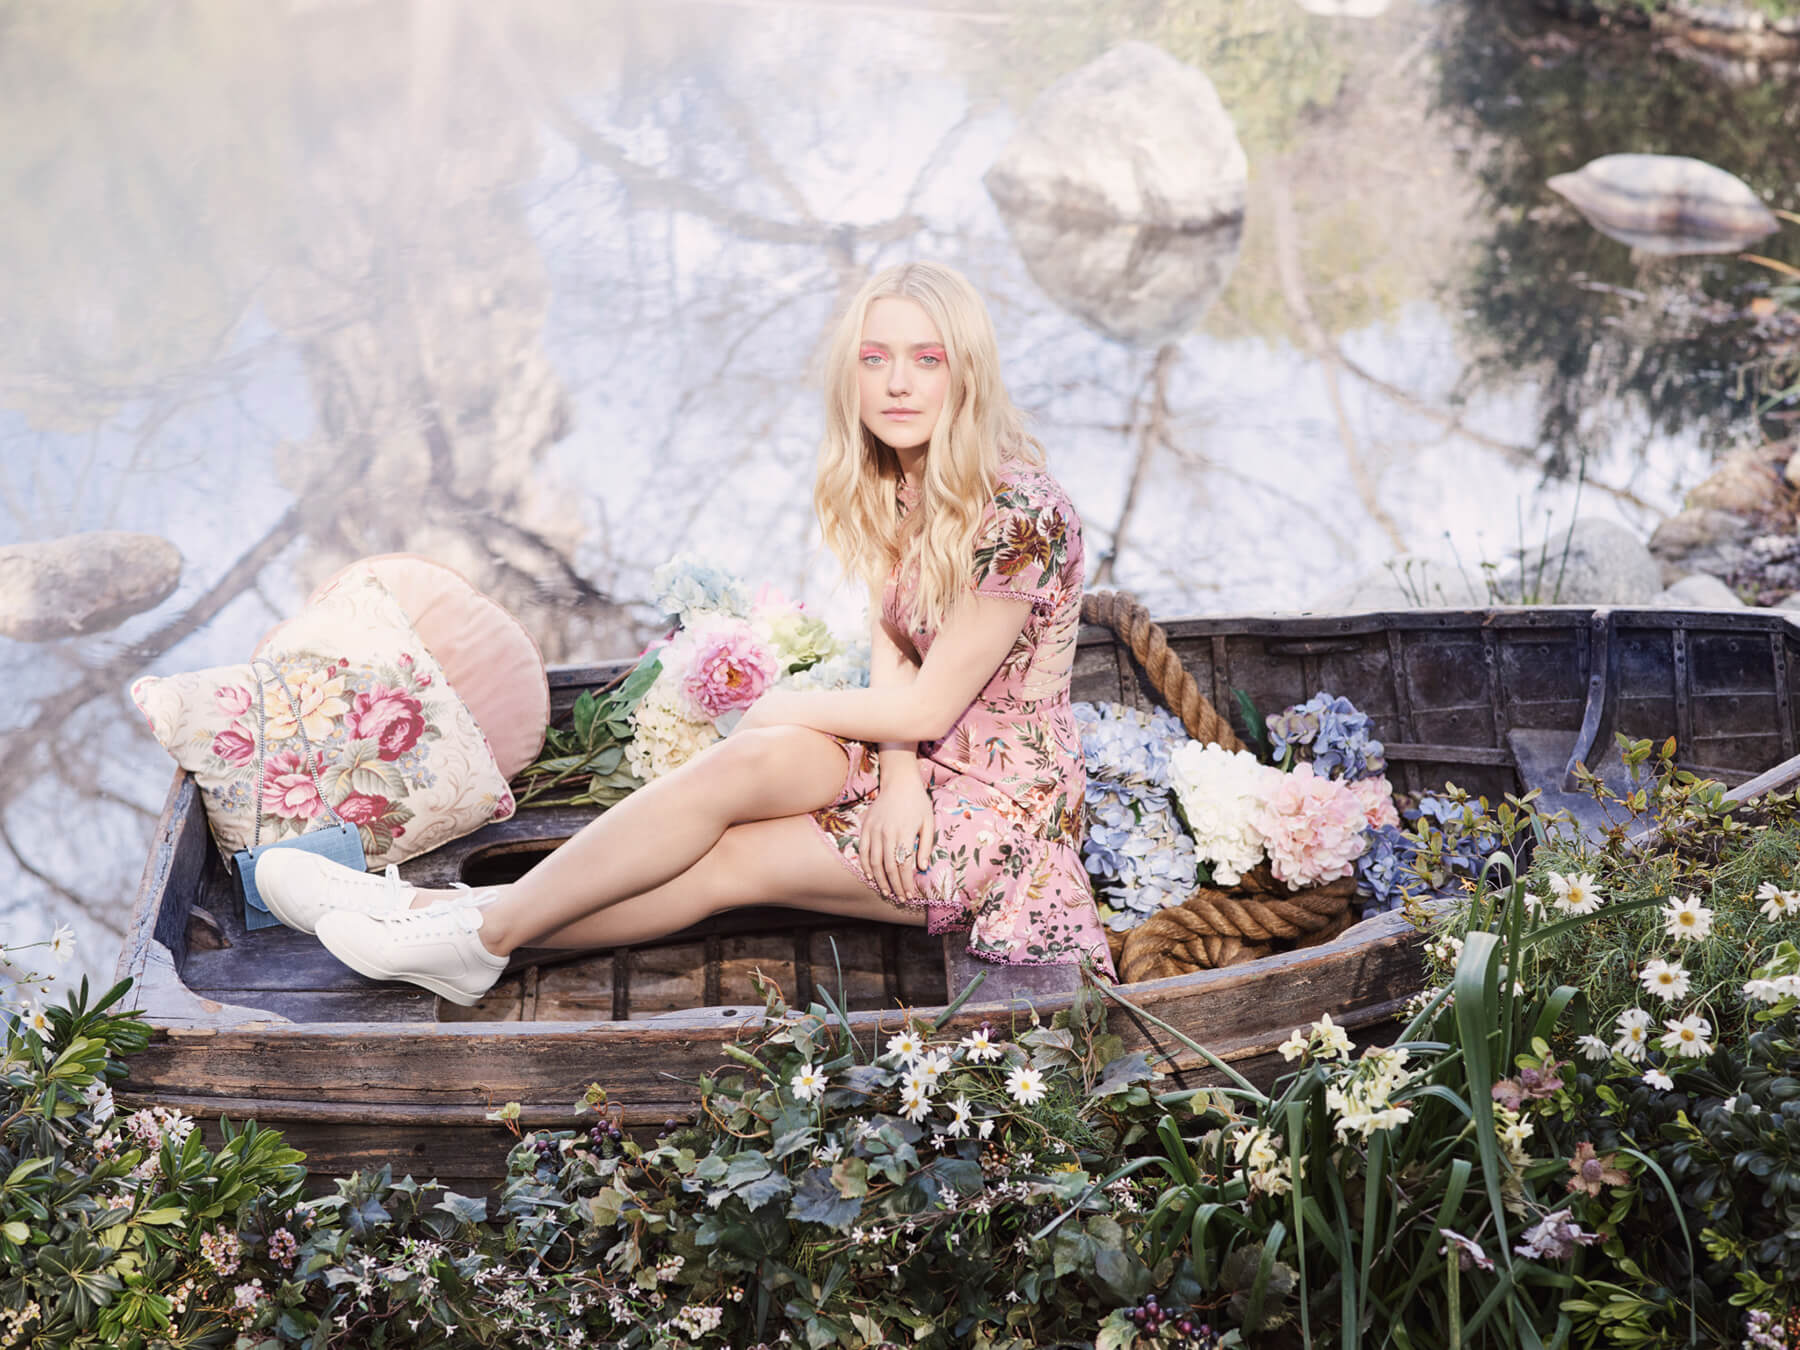 JIMMY CHOO SS17 STYLE DIARY DAKOTA FANNING WEARING THE MIAMI TRAINER AND THE FINLEY BAG (2)_preview.jpeg